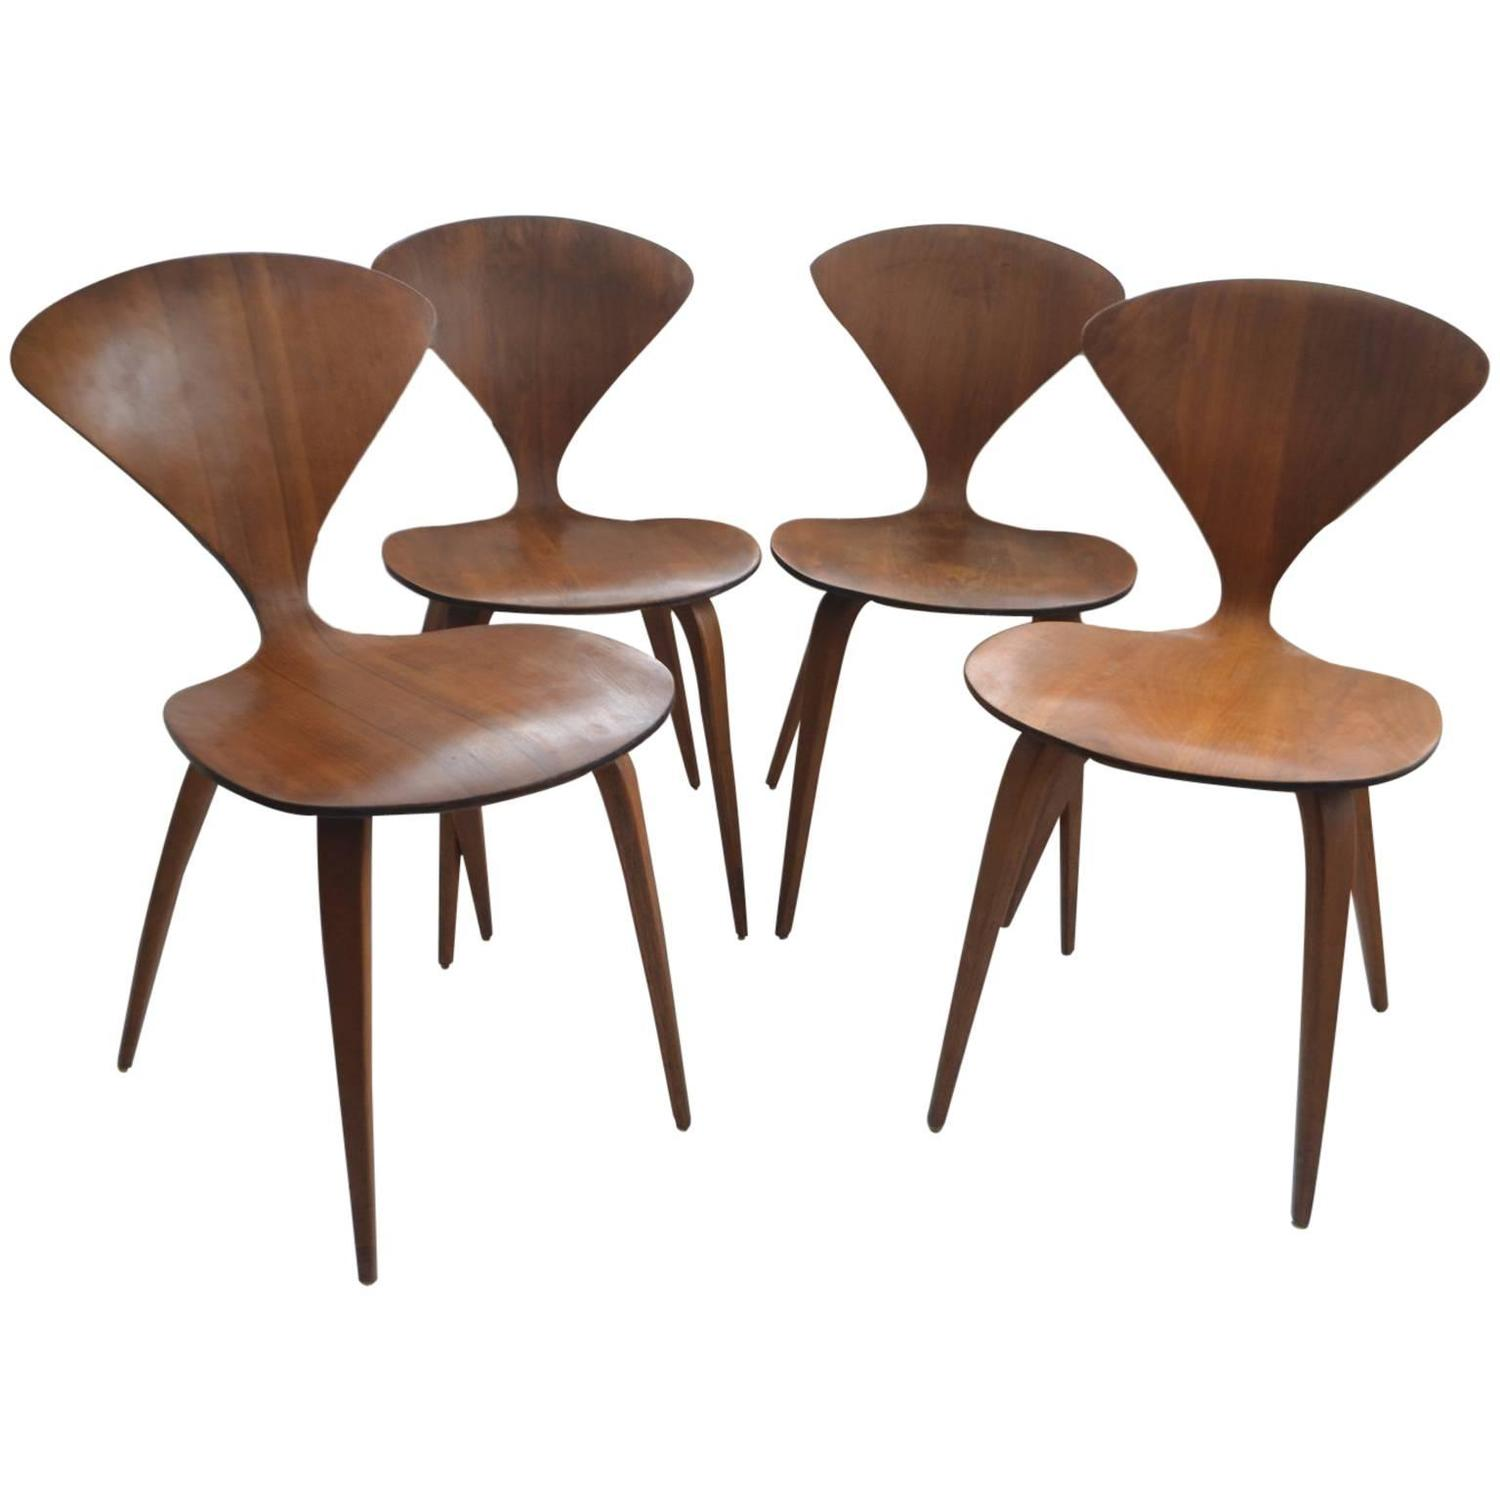 Set Of Four Vintage Plywood And Walnut Chairs By Norman Cherner For  Plycraft At 1stdibs